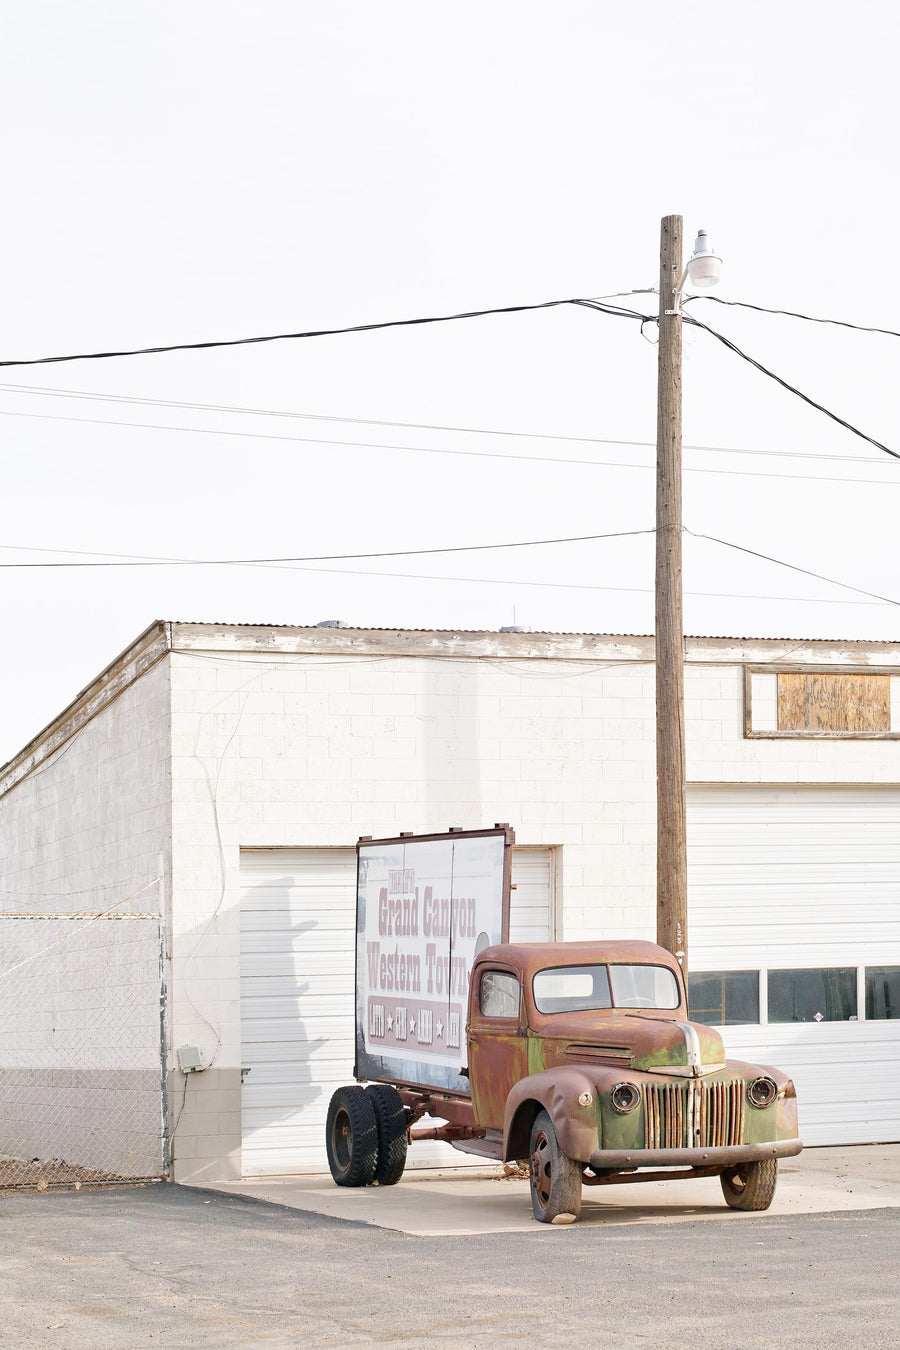 Old Truck, Fredonia,  Arizona, USA  LTD | Christian Fletcher Photo Images | Landscape Photography Australia